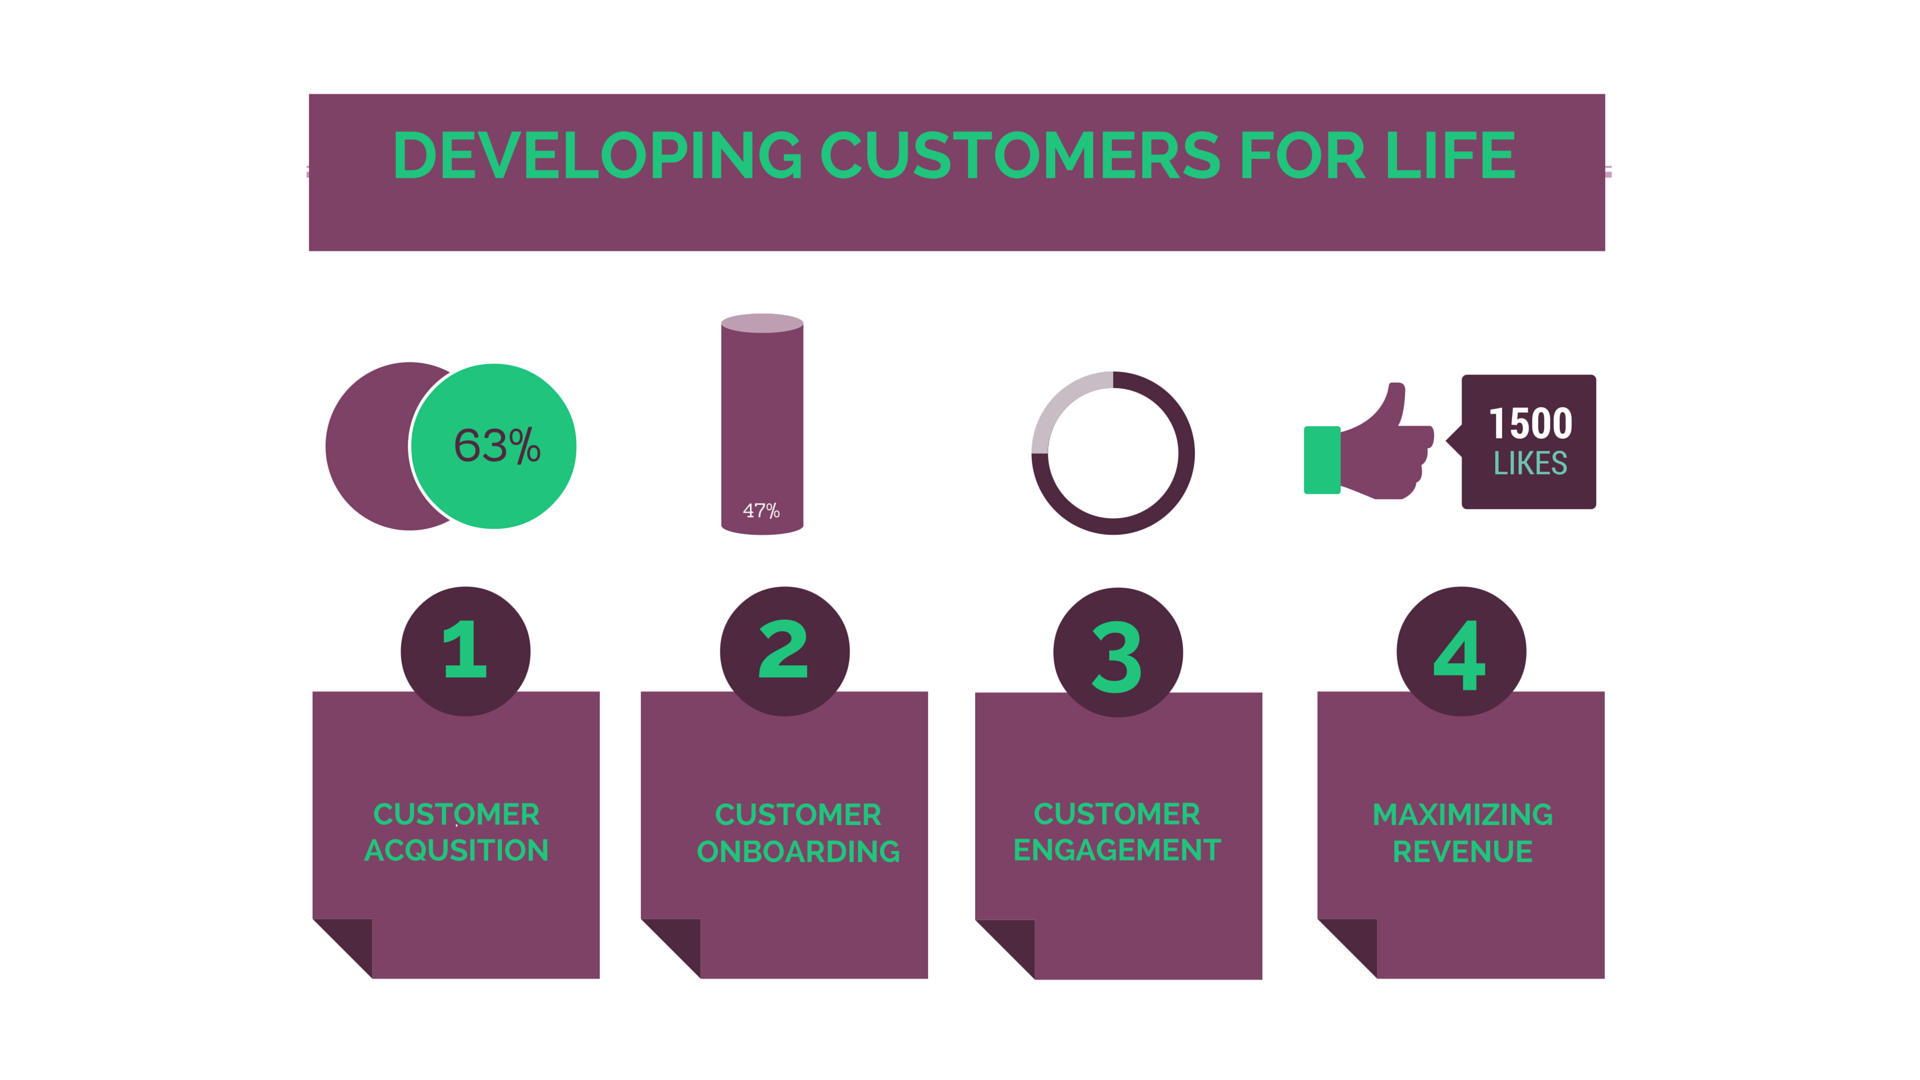 DEVELOPING-CUSTOMERS-FOR-LIFE-1